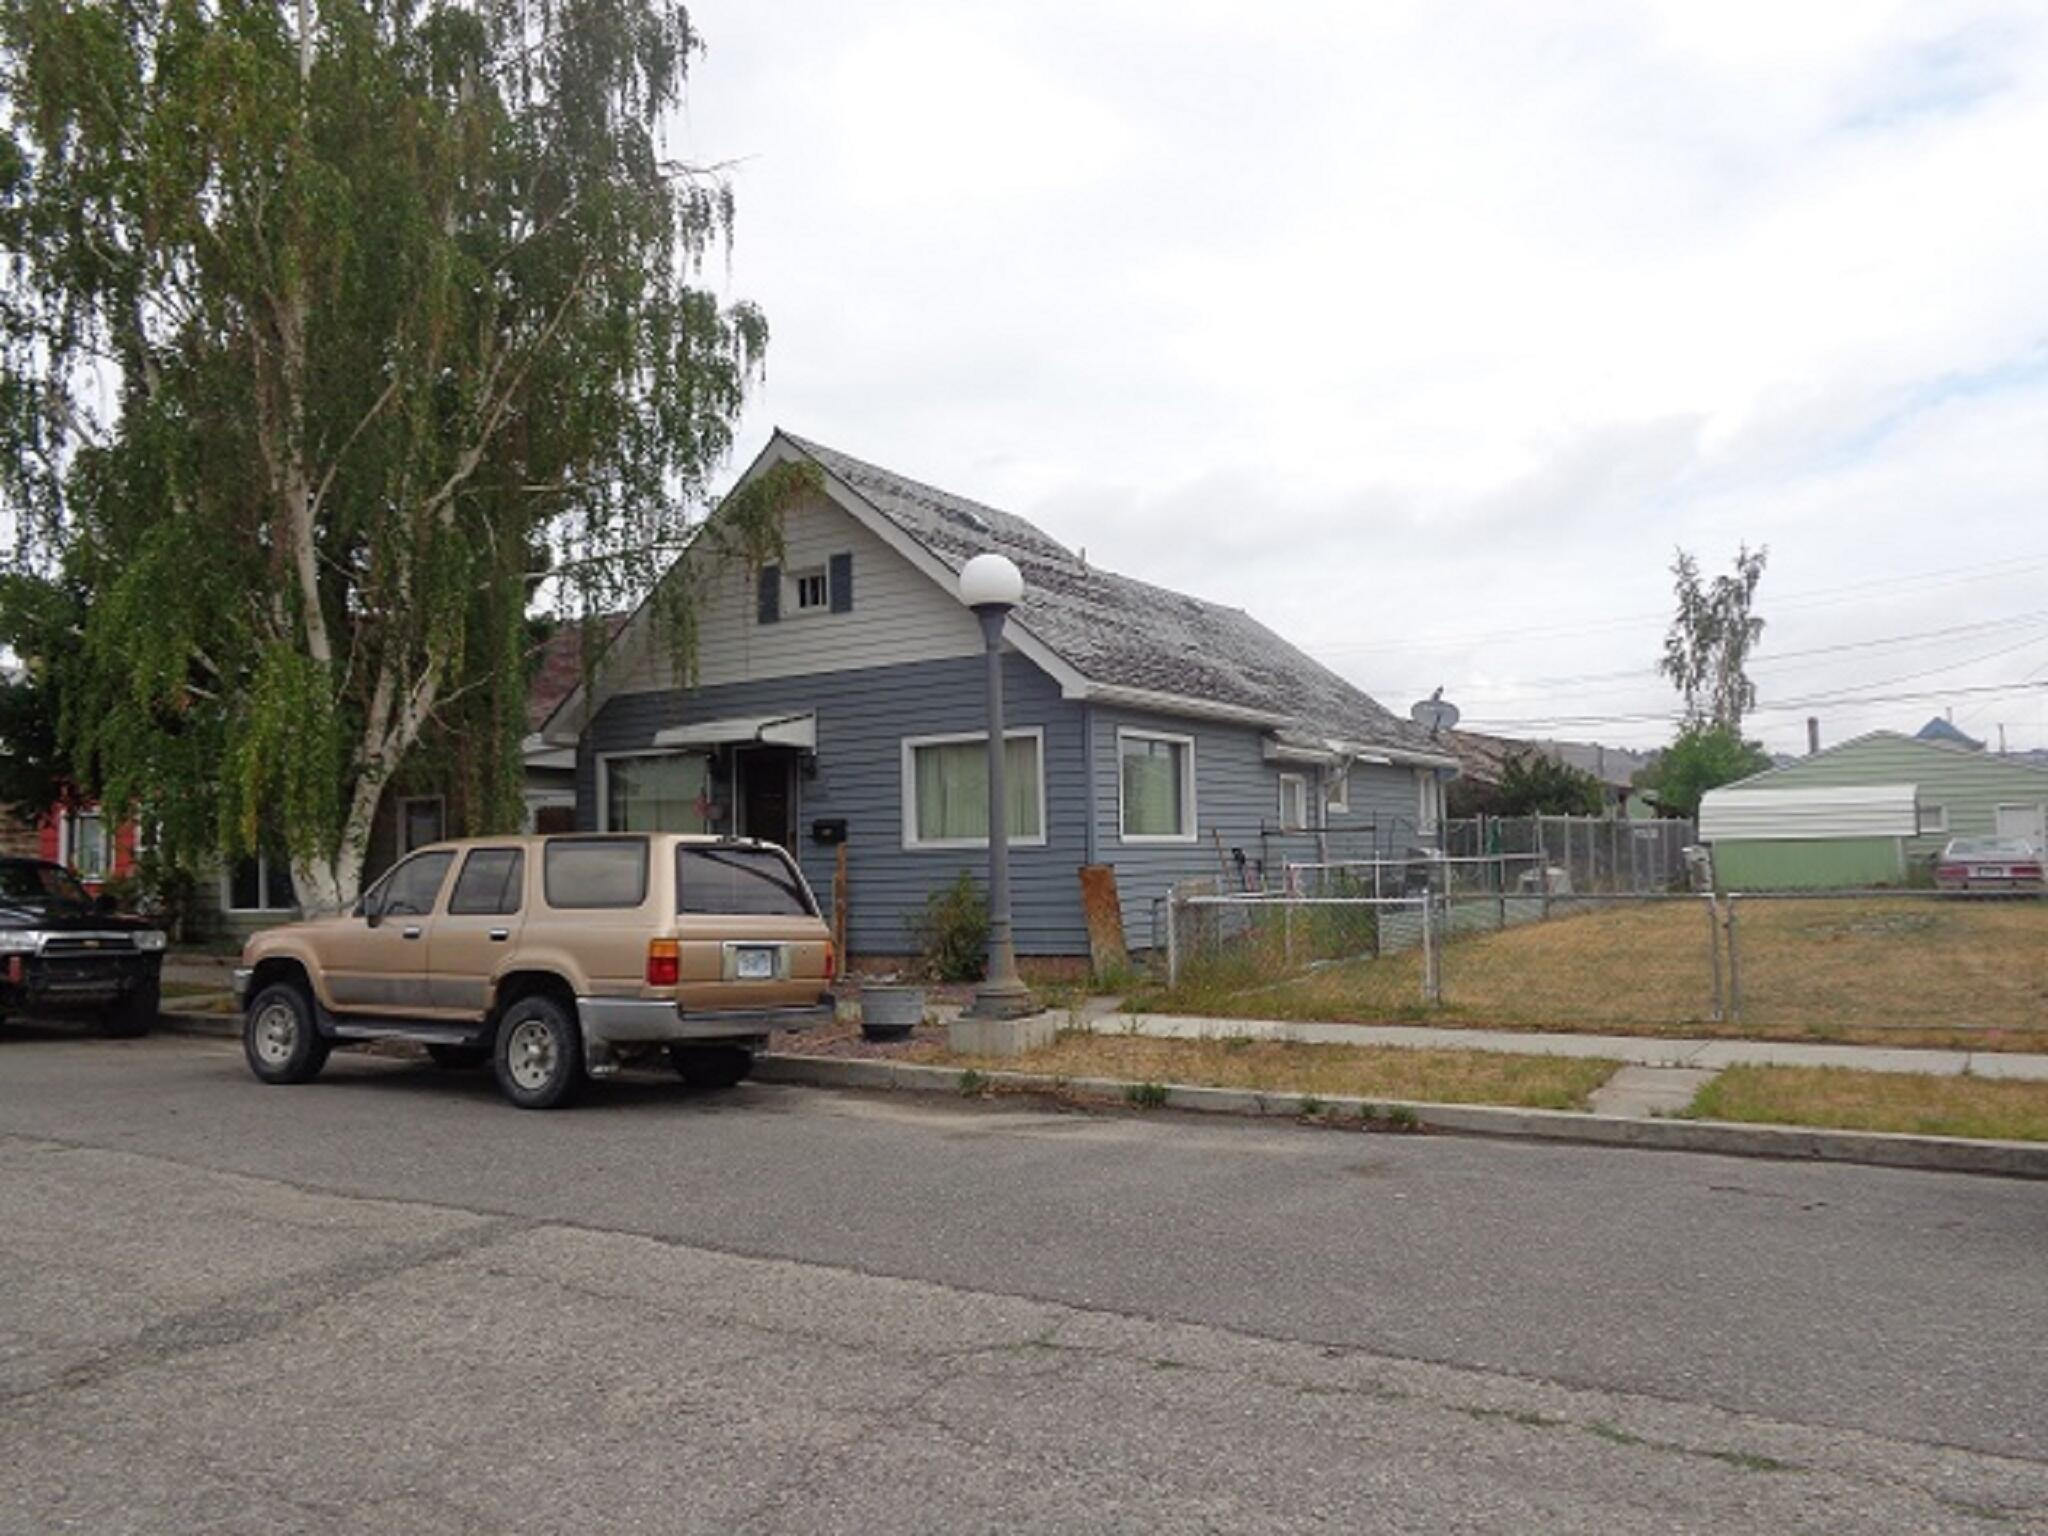 Two-bedroom, one-bathroom home with some nice features being sold in ''as-is'' condition and Seller will make no repairs or upgrades.